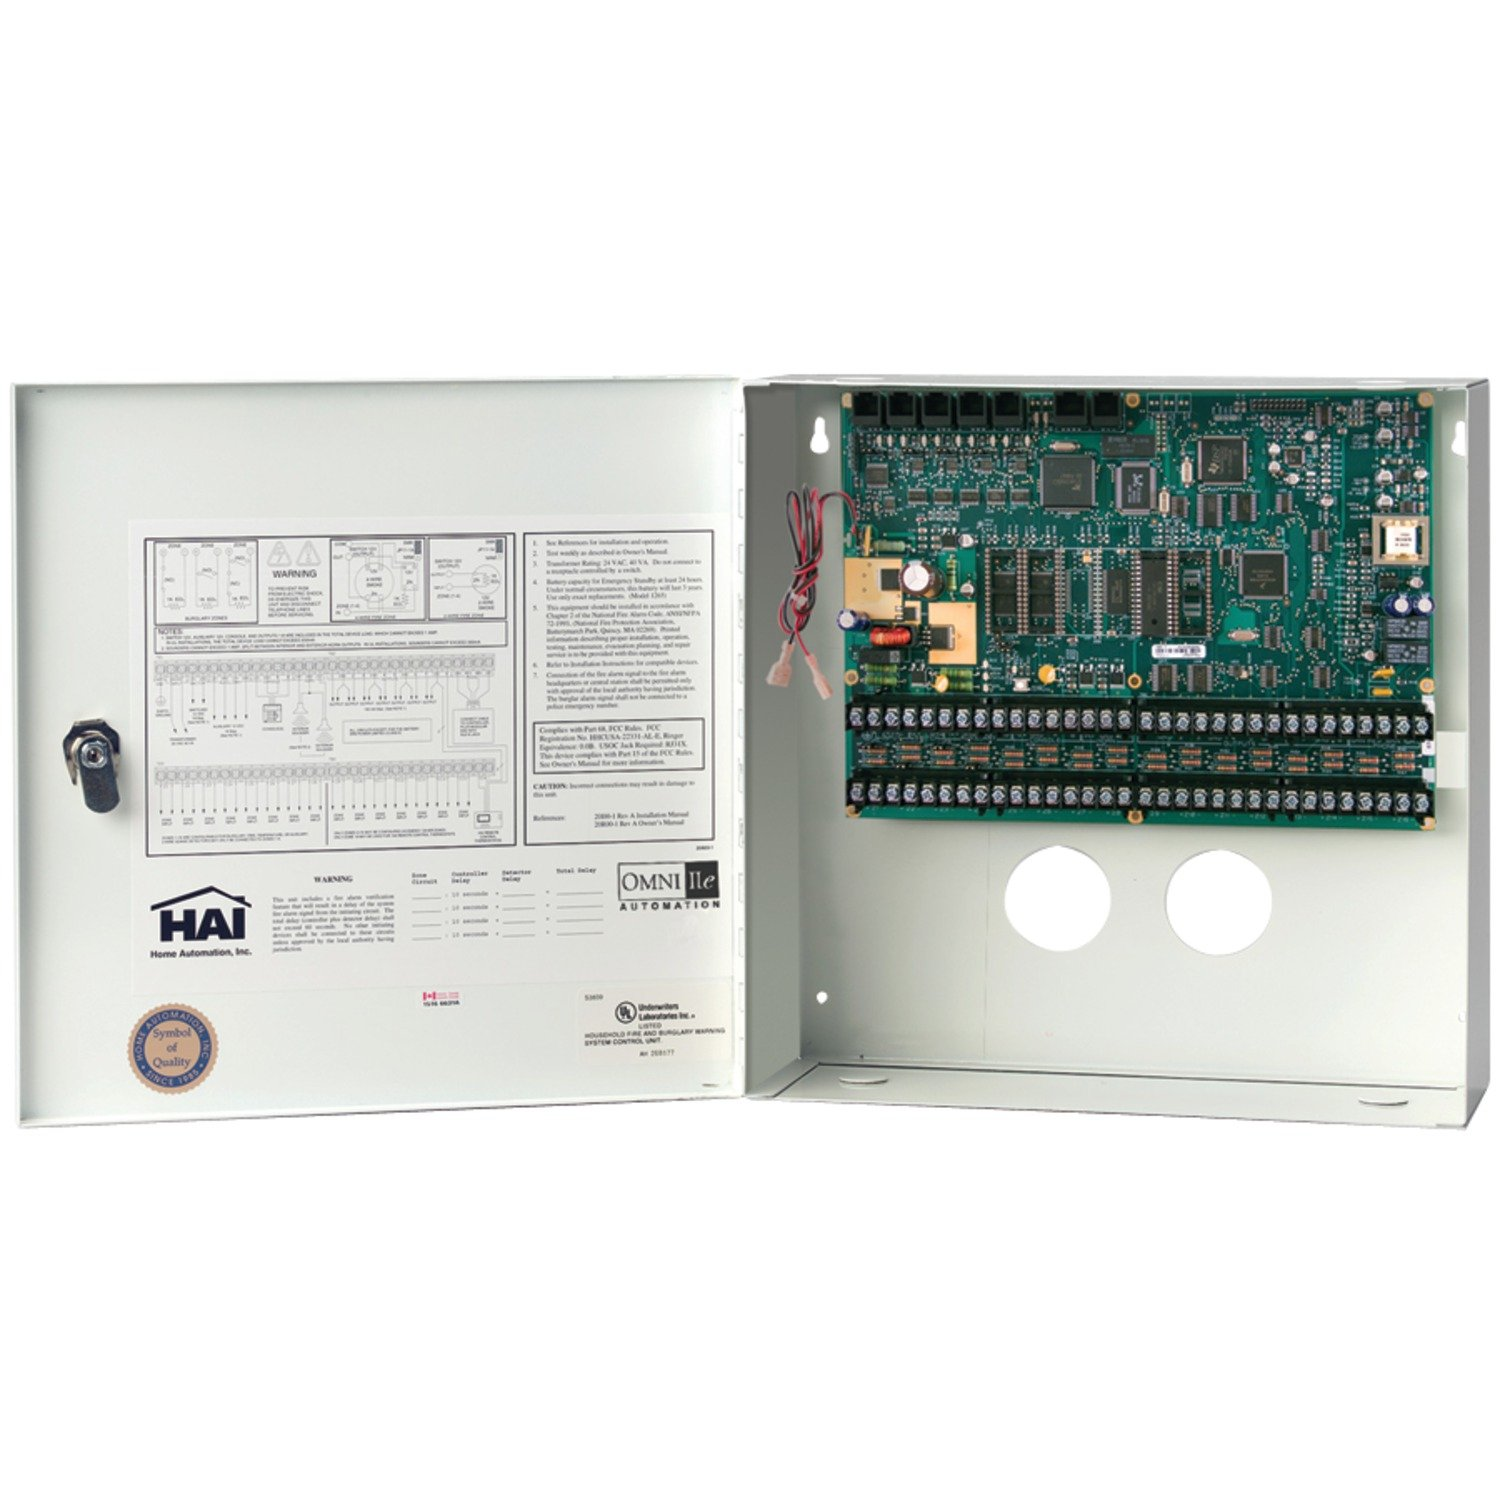 Amazon.com: Leviton 20A00-70 Omni LTe Controller: Home Improvement